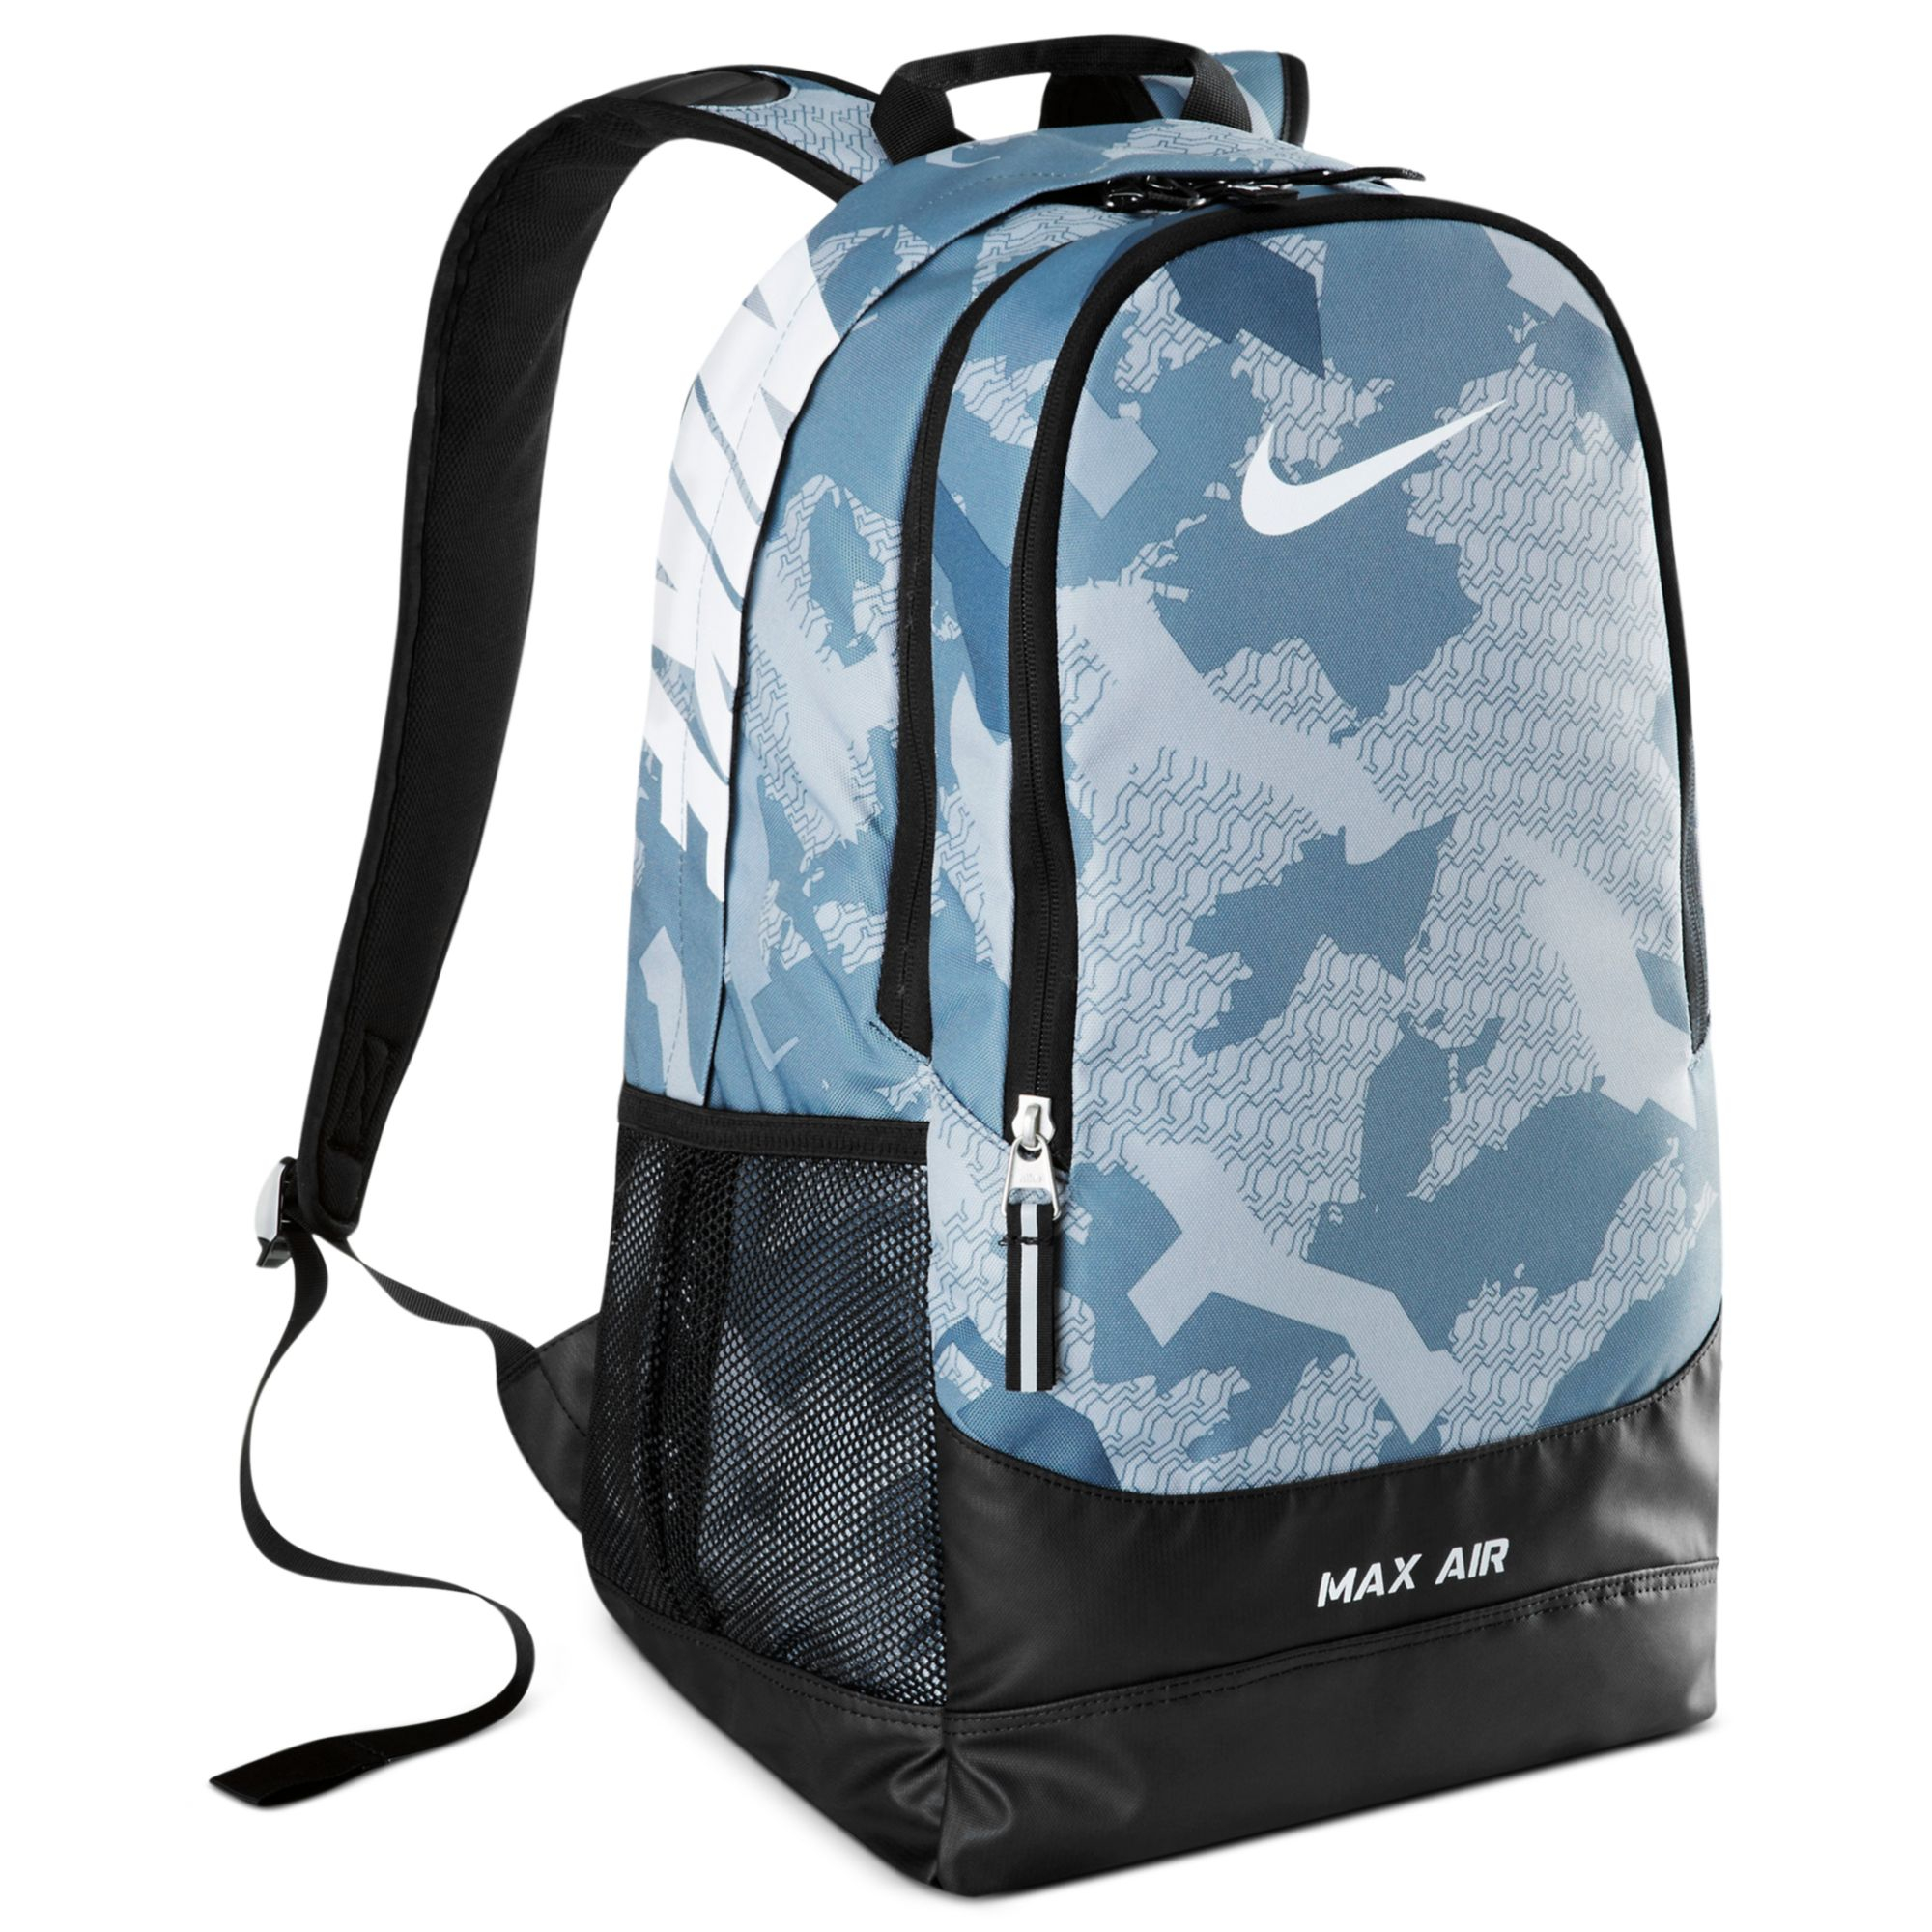 cf81340223 Lyst - Nike Team Training Max Air Large Graphic Backpack in Gray for Men